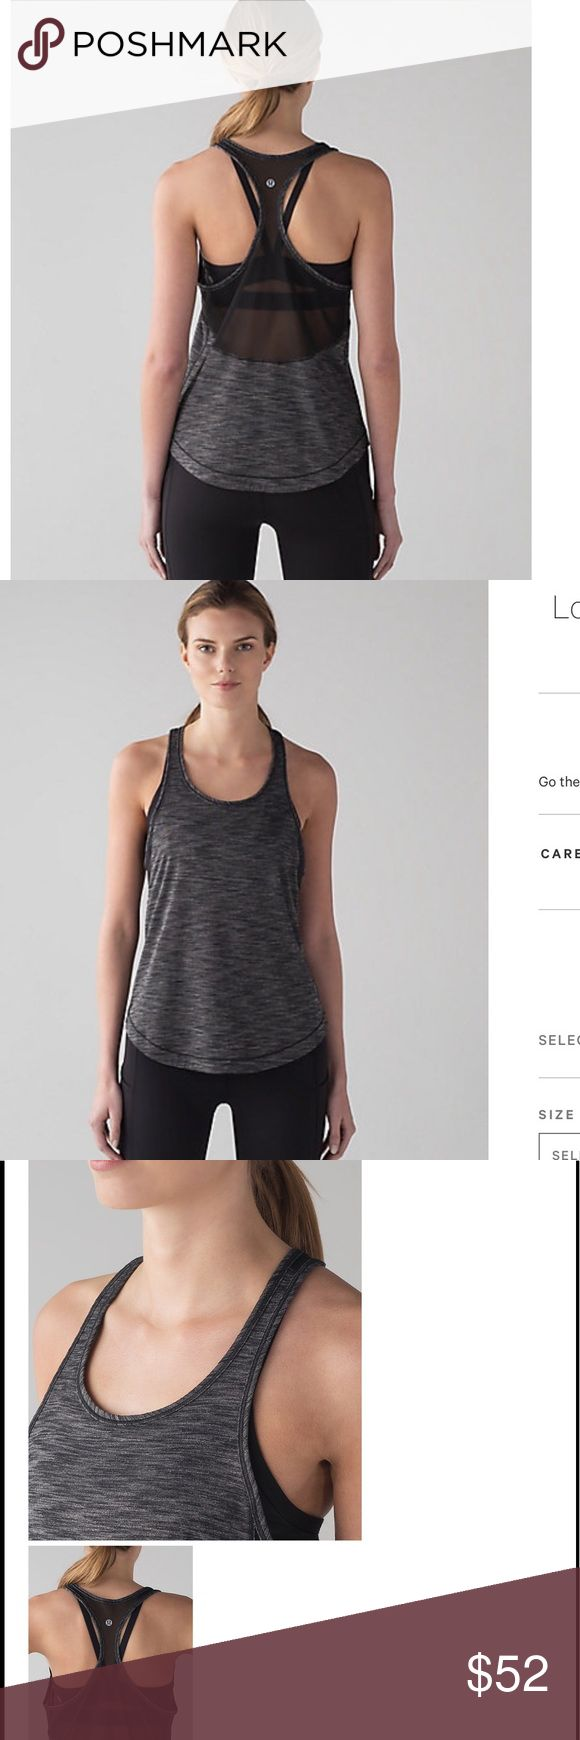 NEW LULULEMON long distance racerback mesh tank Brand new with tags The sweat-wicking, 4way stretch Seriously Light™ Luon fabric makes moving a breeze · seriously lightweight · sweat-wicking · four-way stretch · cottony-soft Pebble Jacquard White Black DESIGNED FOR running  • LYCRA® for stretch & shape retention • Racerback cut for full range of movement • RELAXED FIT, HIP LENGTH Layers easily and gives you room to breathe • SILVERESCENT® TECHNOLOGY Powered by X-STATIC®, inhibits the growth…